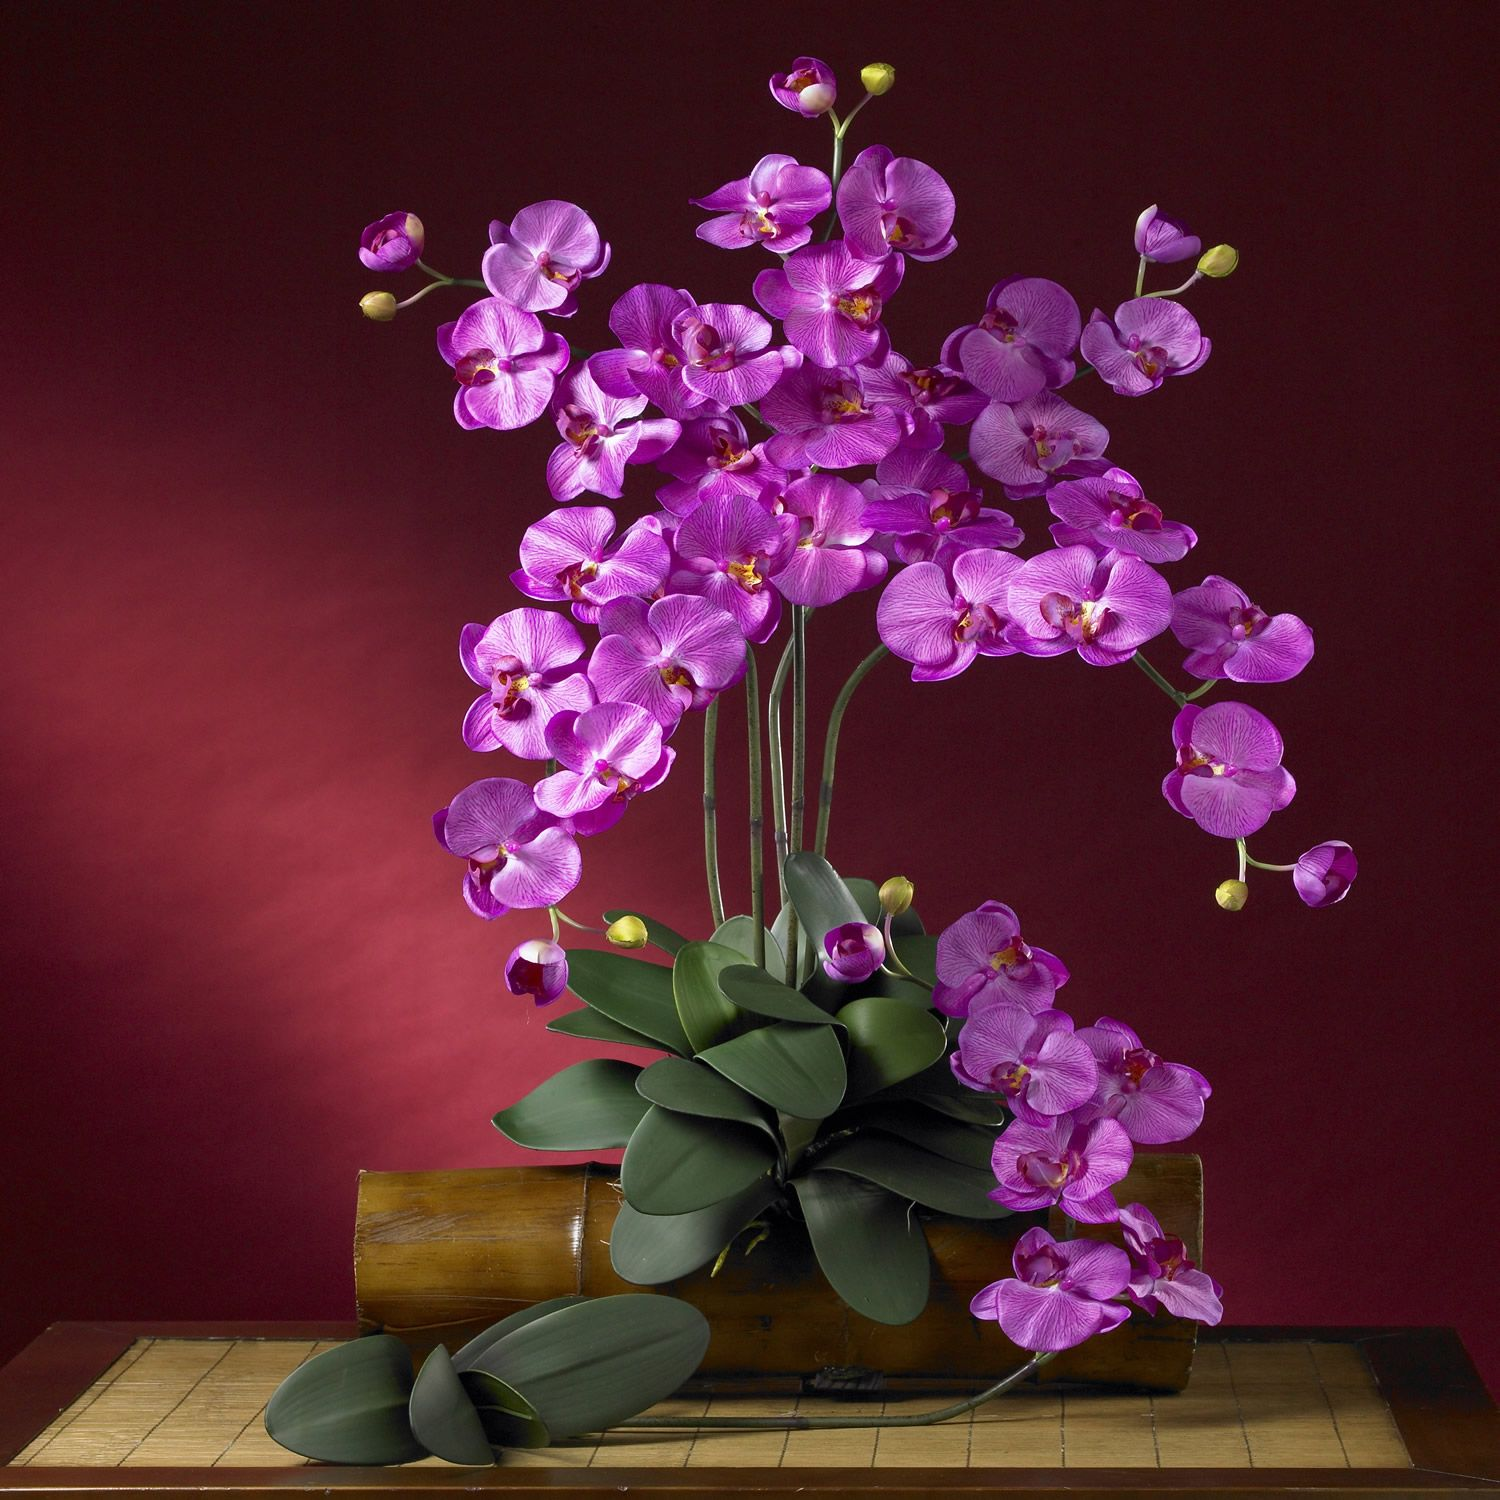 Astounding Orchid Flower Arrangement Ideas Of Gone Green Site Brighten Up Your Home